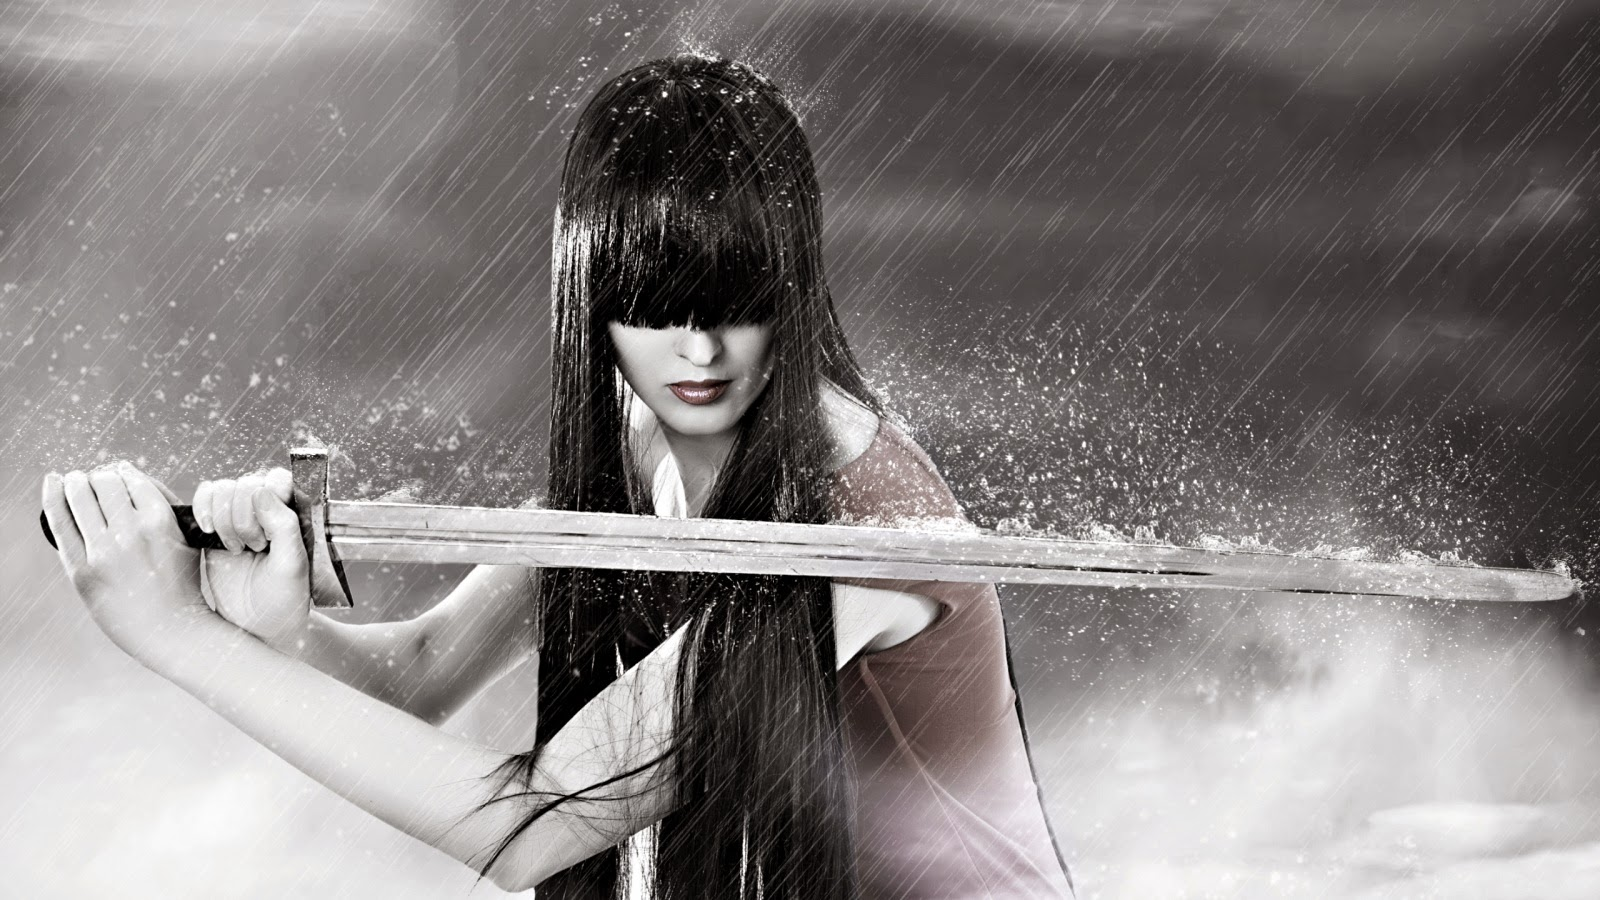 Sword warrior girl in rain